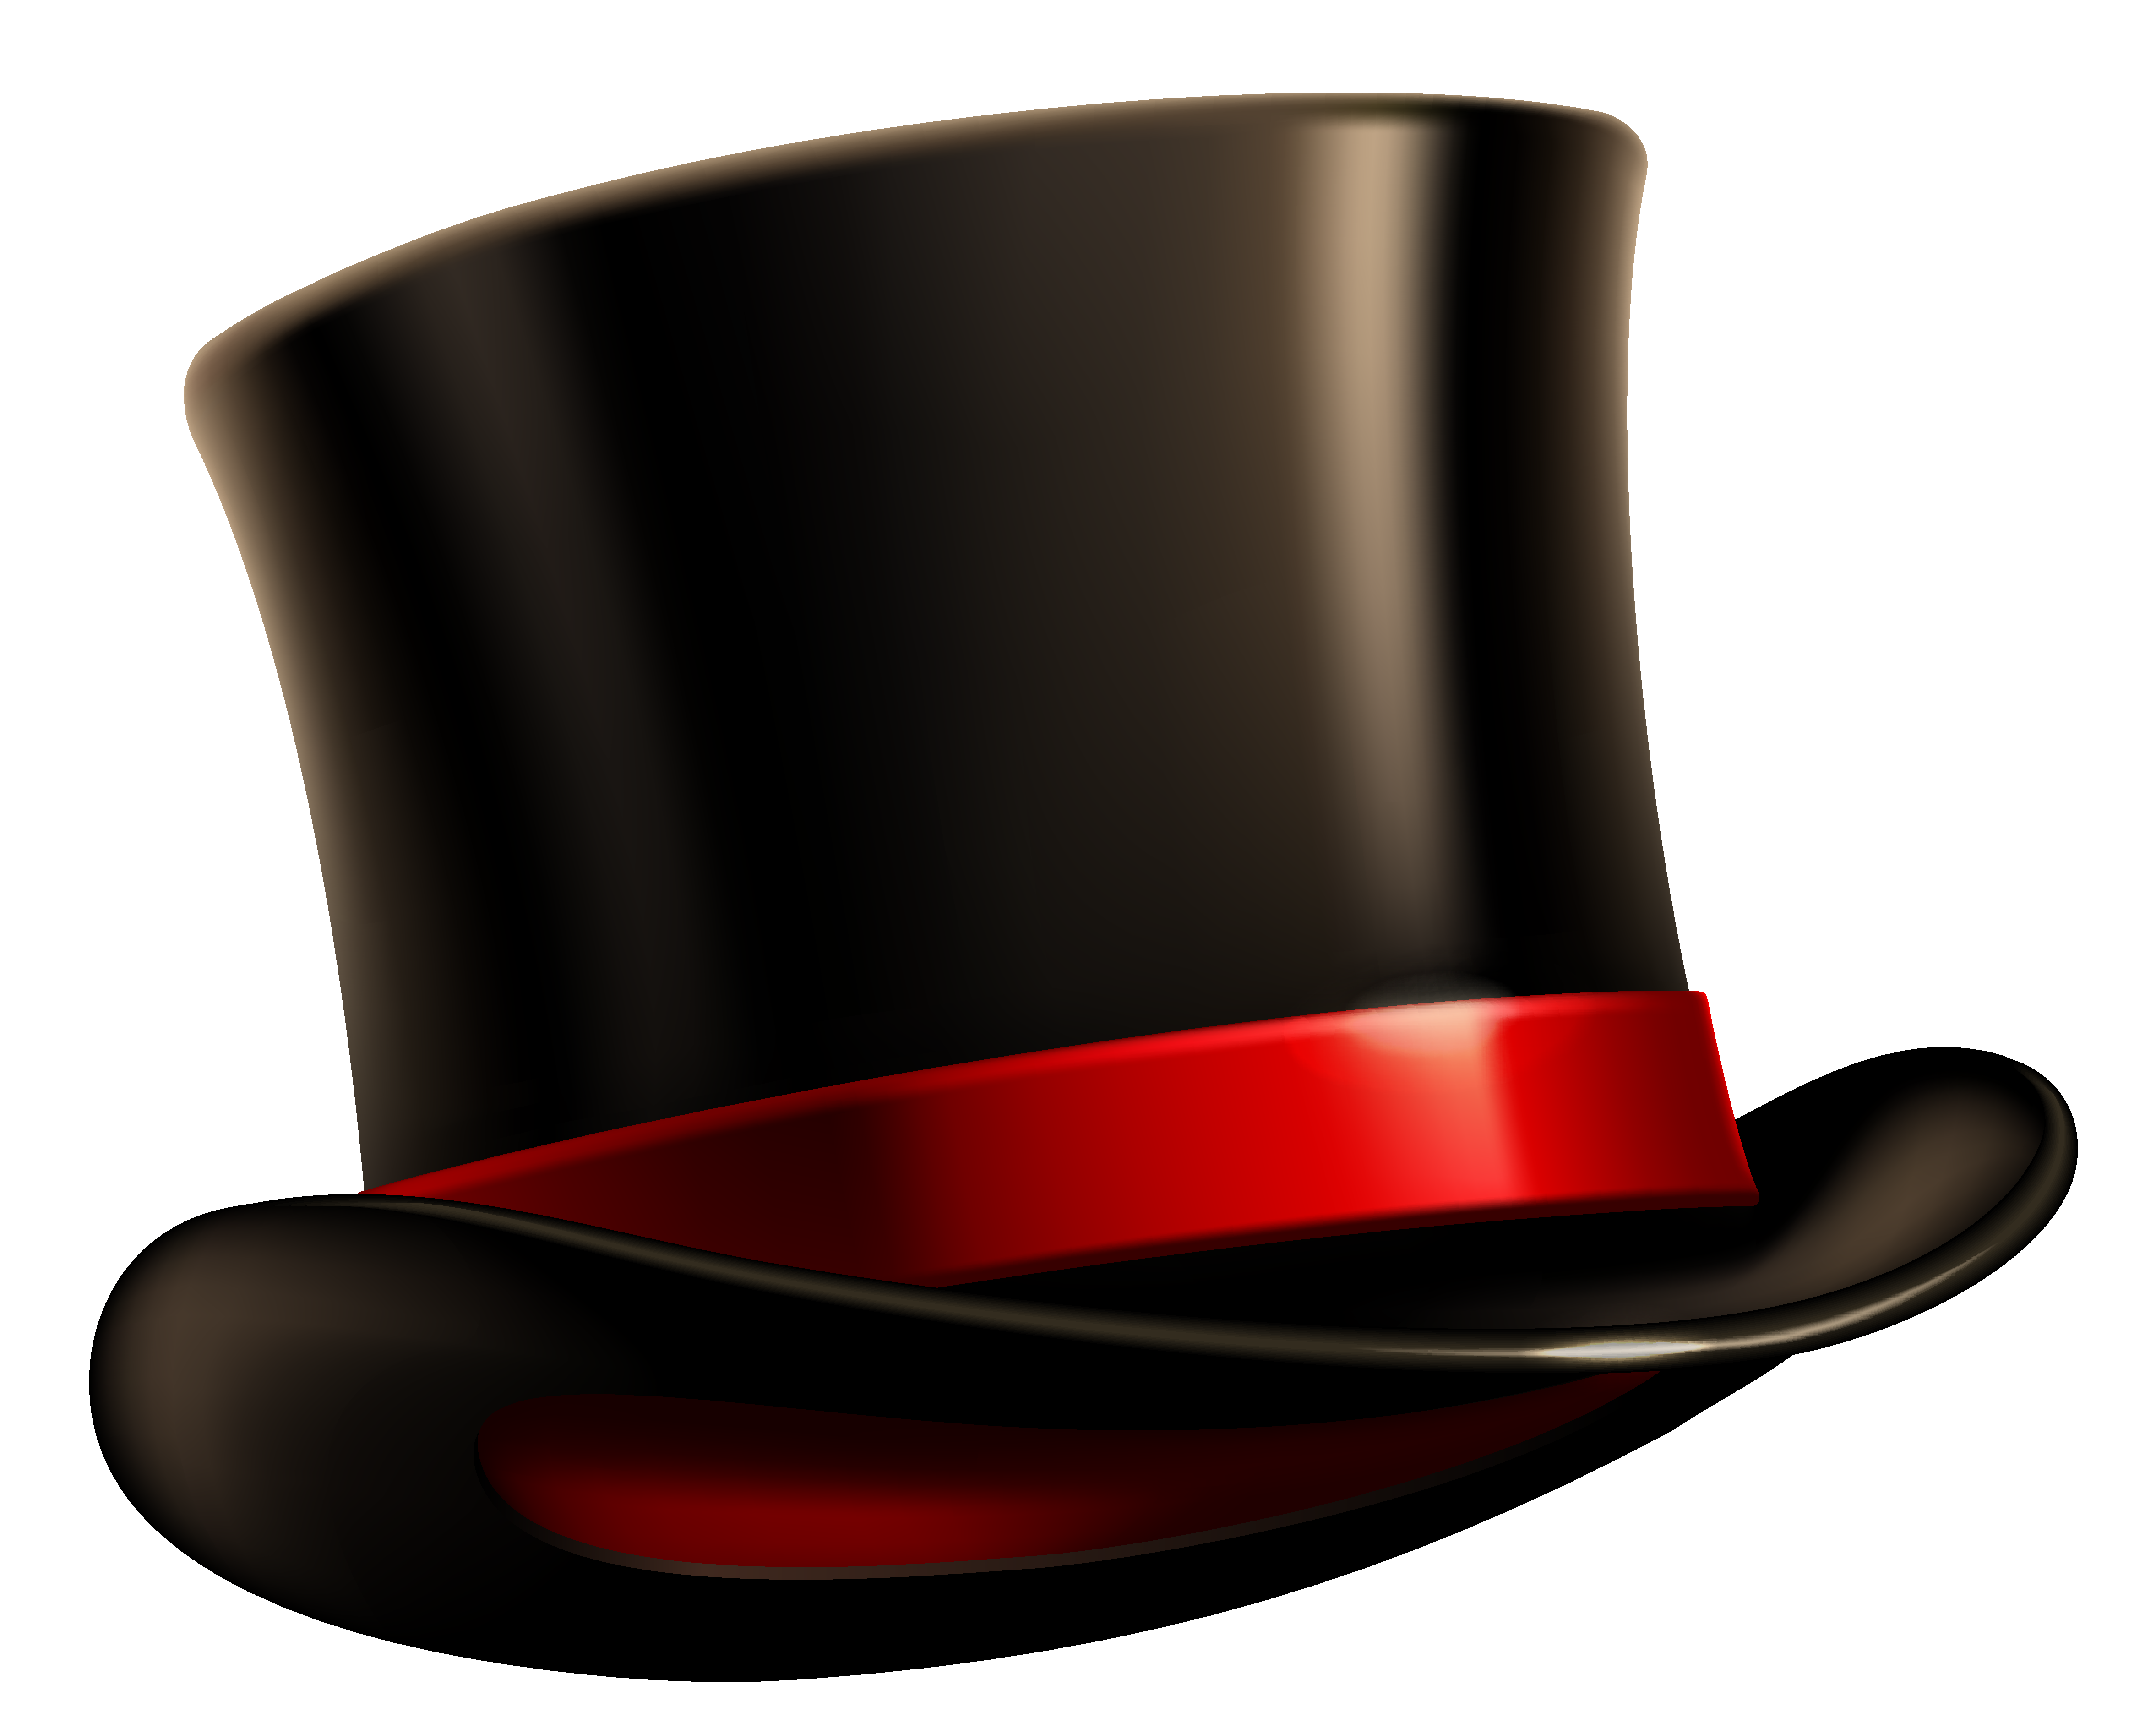 Top Hat Clip Art - Cliparts.co